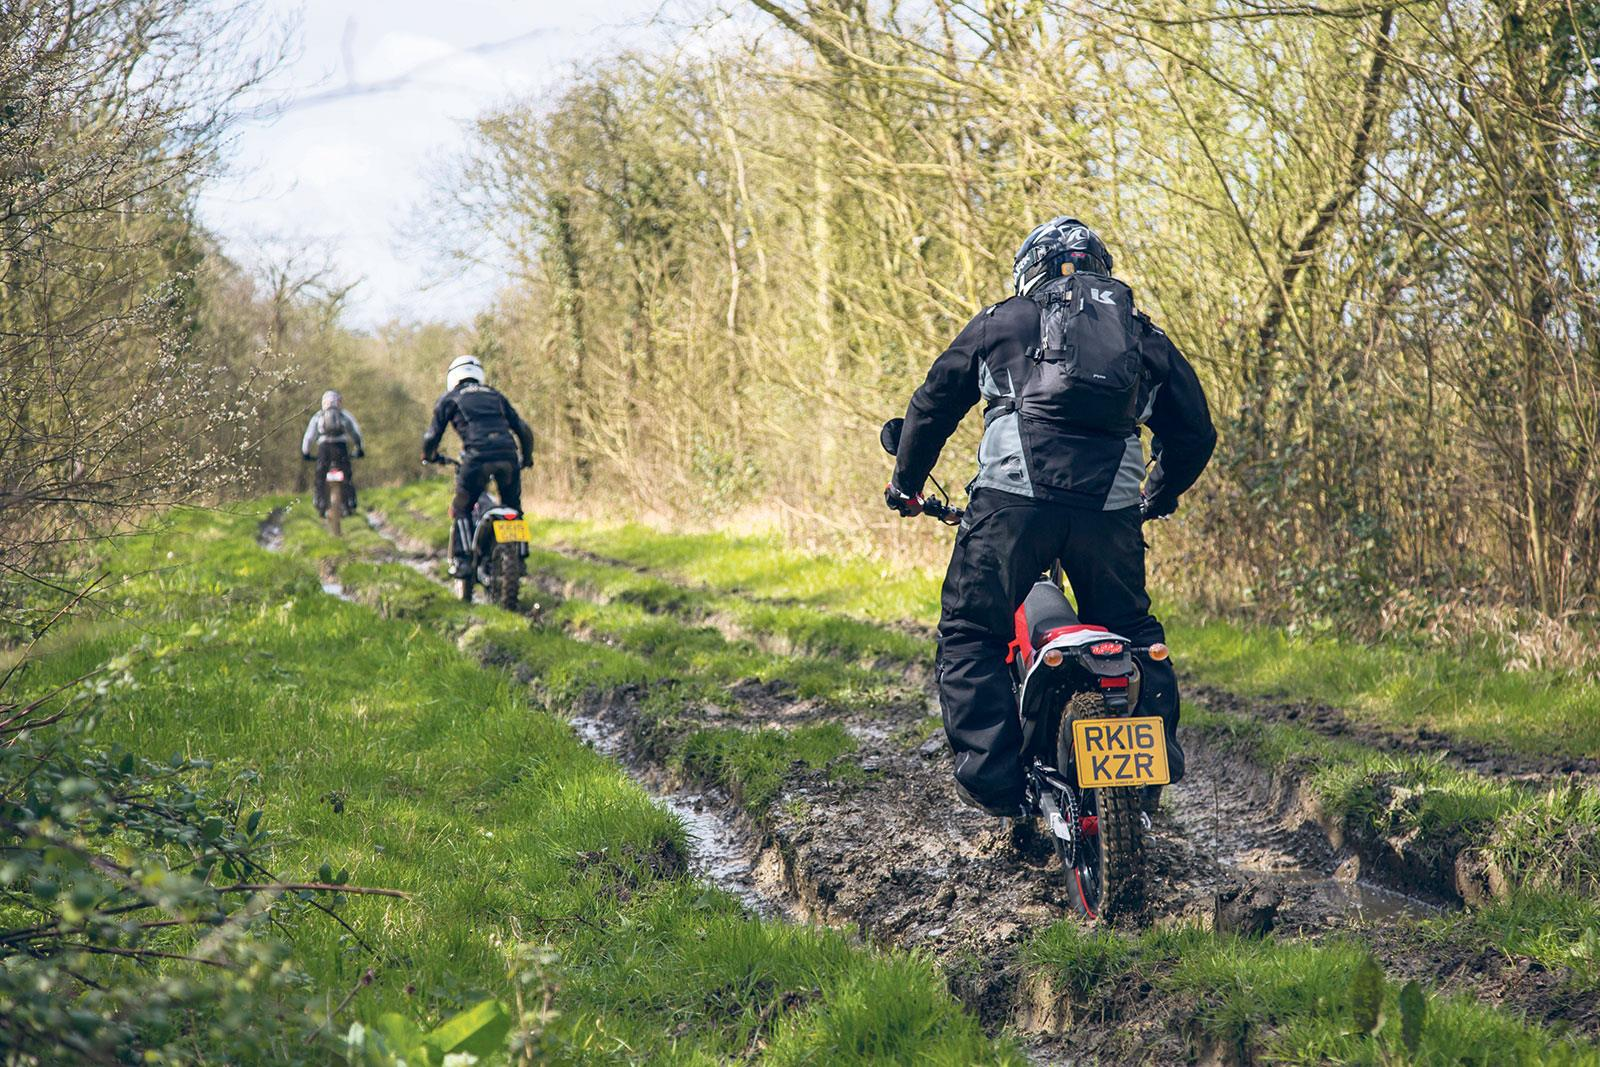 Green-laning and the law